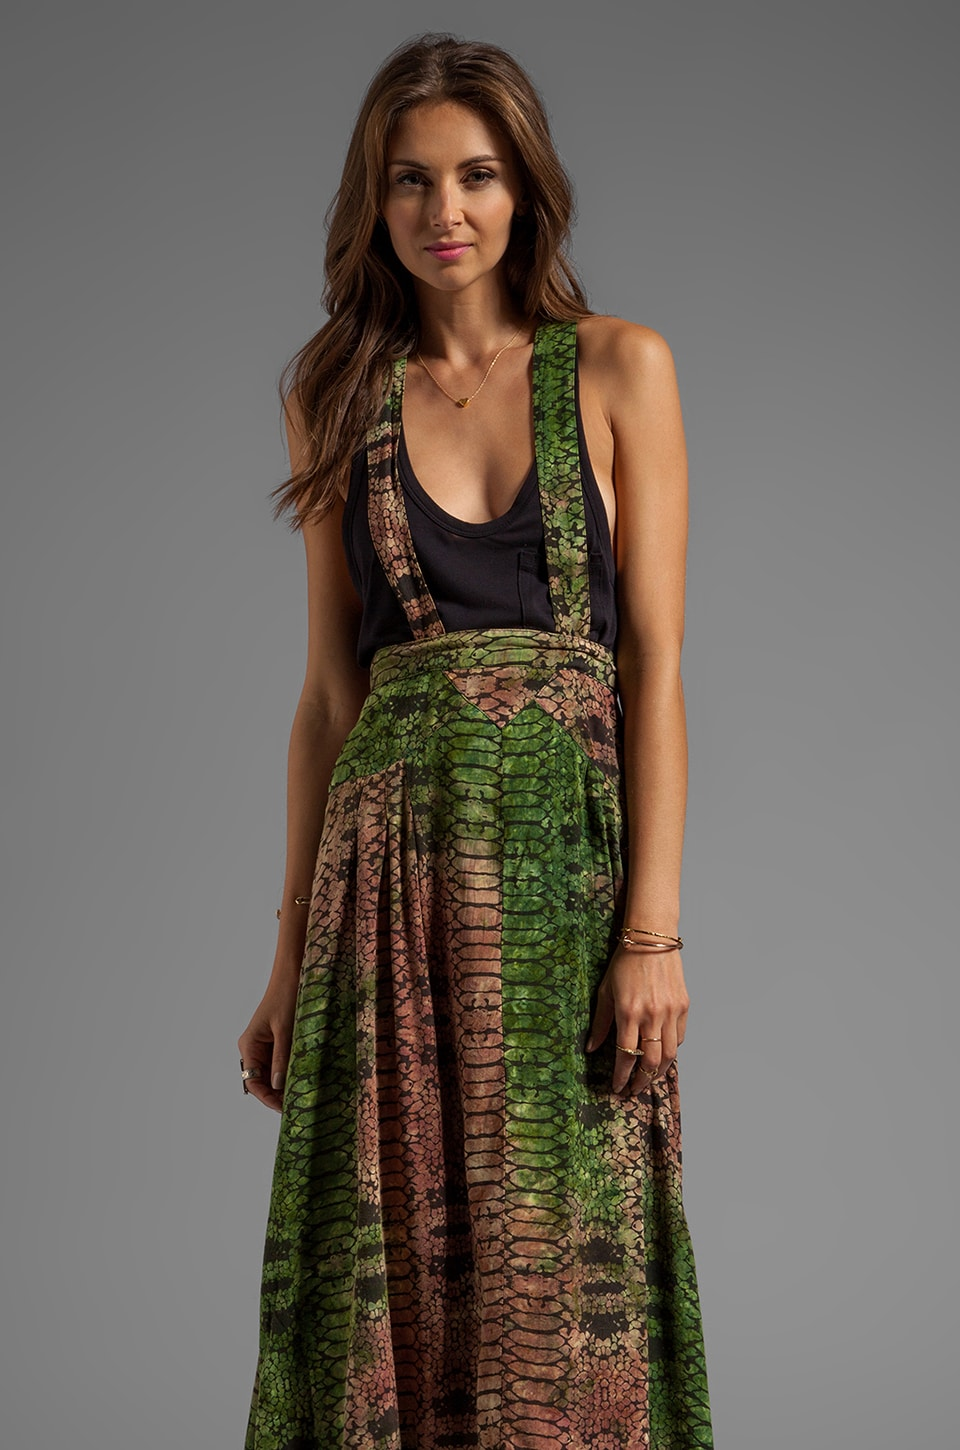 Tallow Pandanus Maxi Skirt in Multi